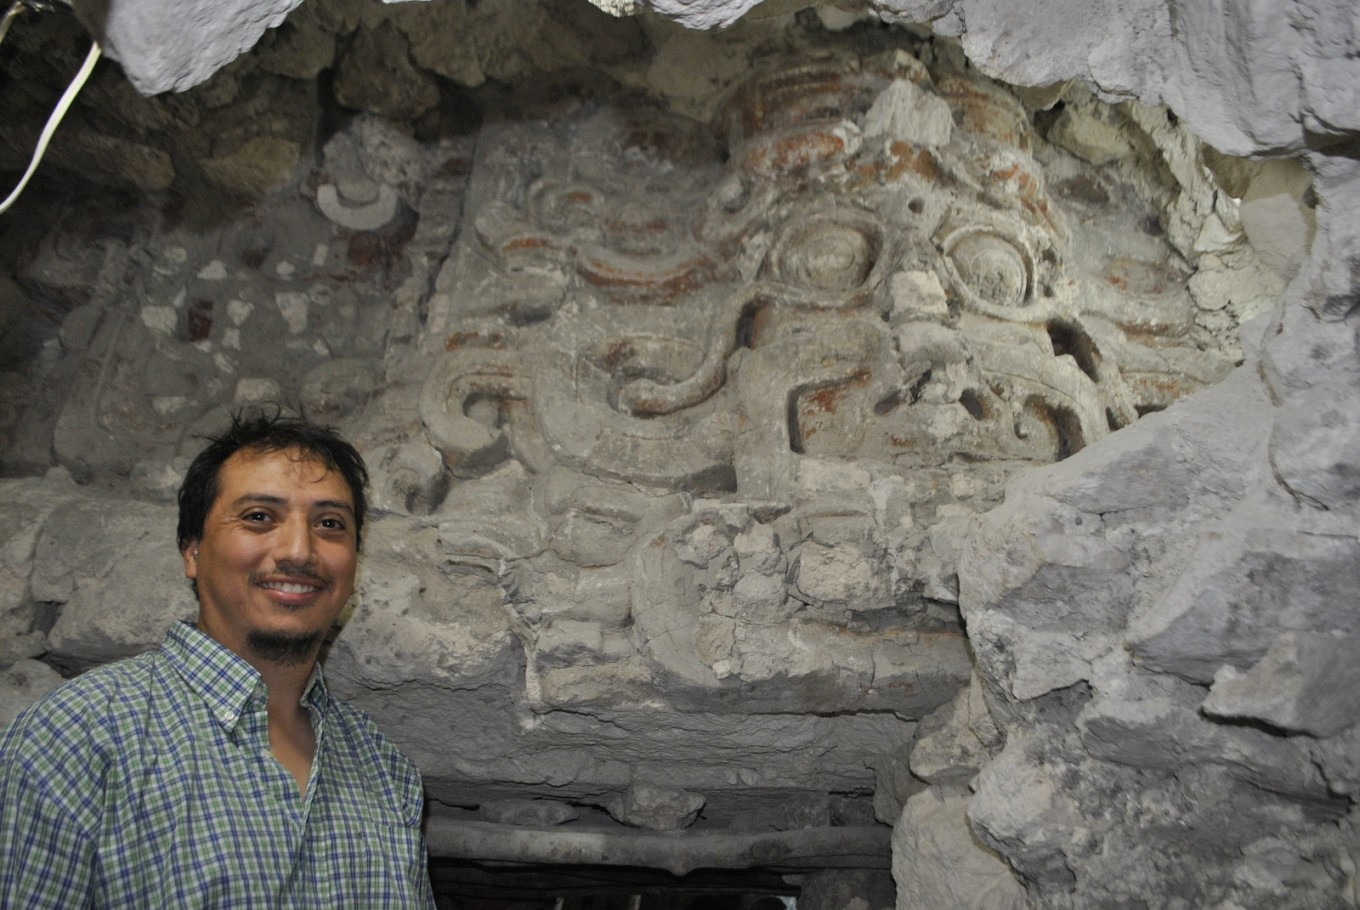 Experts discover hidden ancient Maya structures in Guatemala